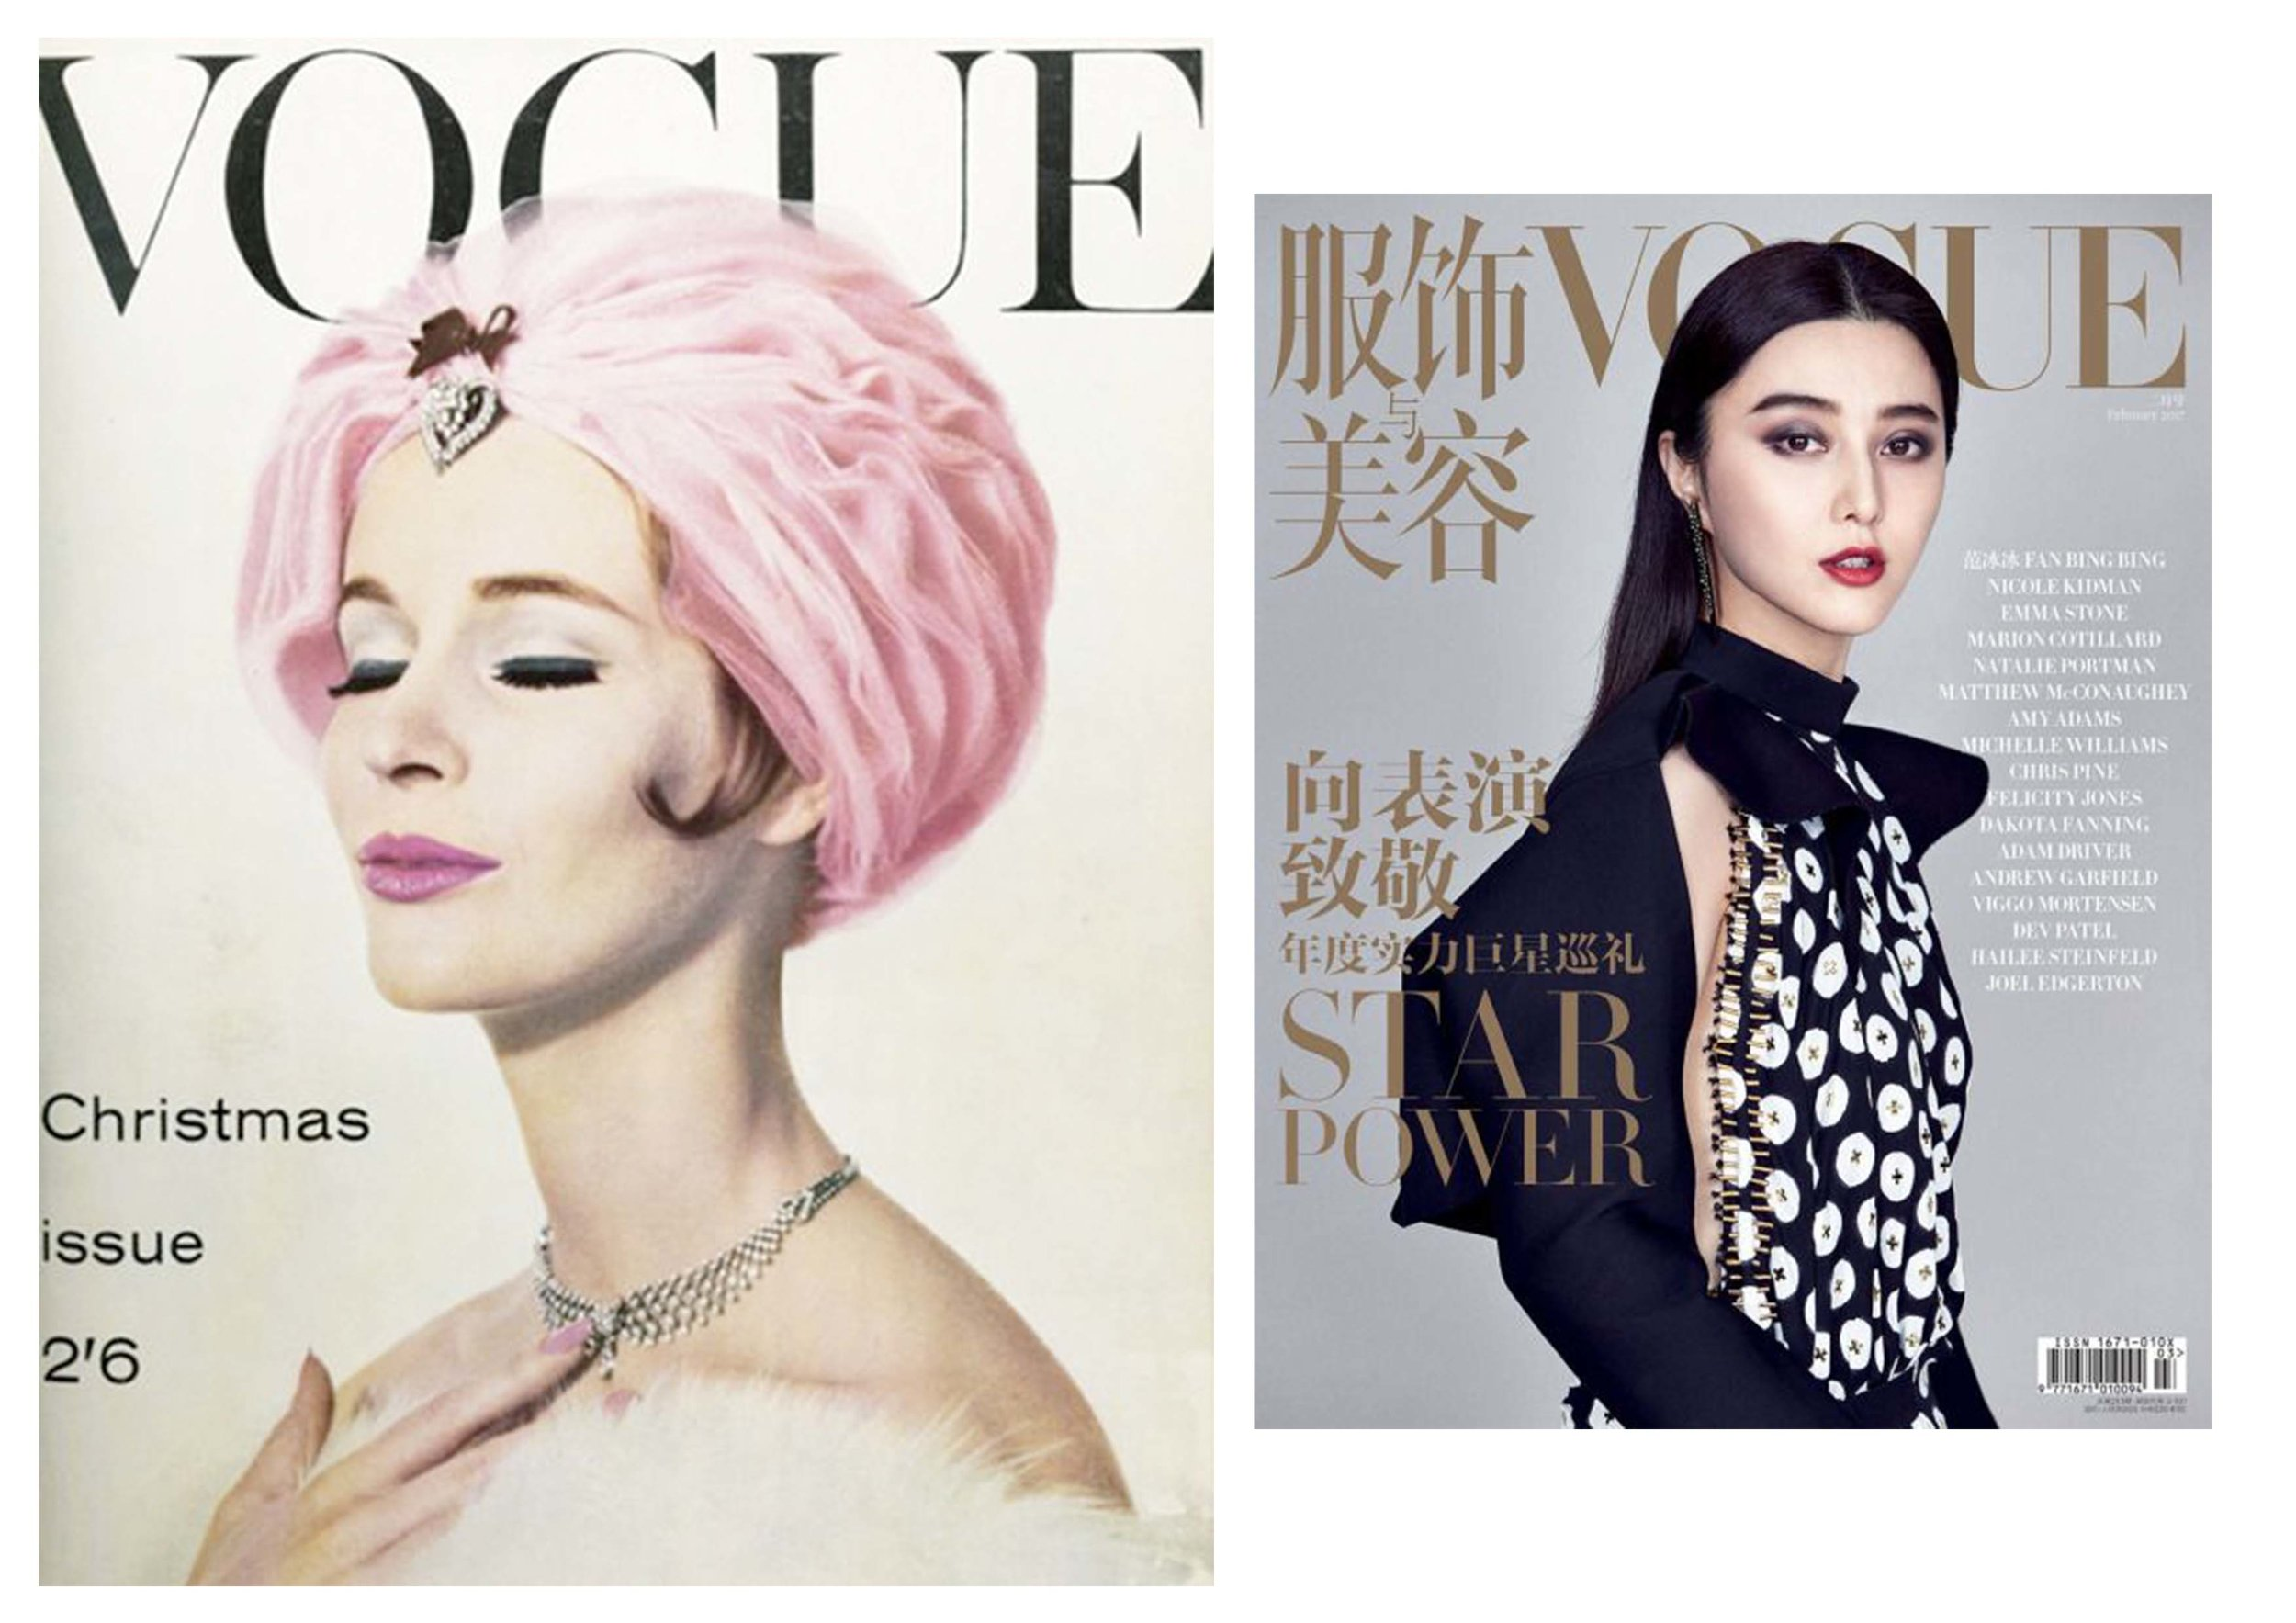 Vogue Cover Then and Now: The photoshopped, commercialised beauty covers, Fan Bingbing for Vogue China (Right)